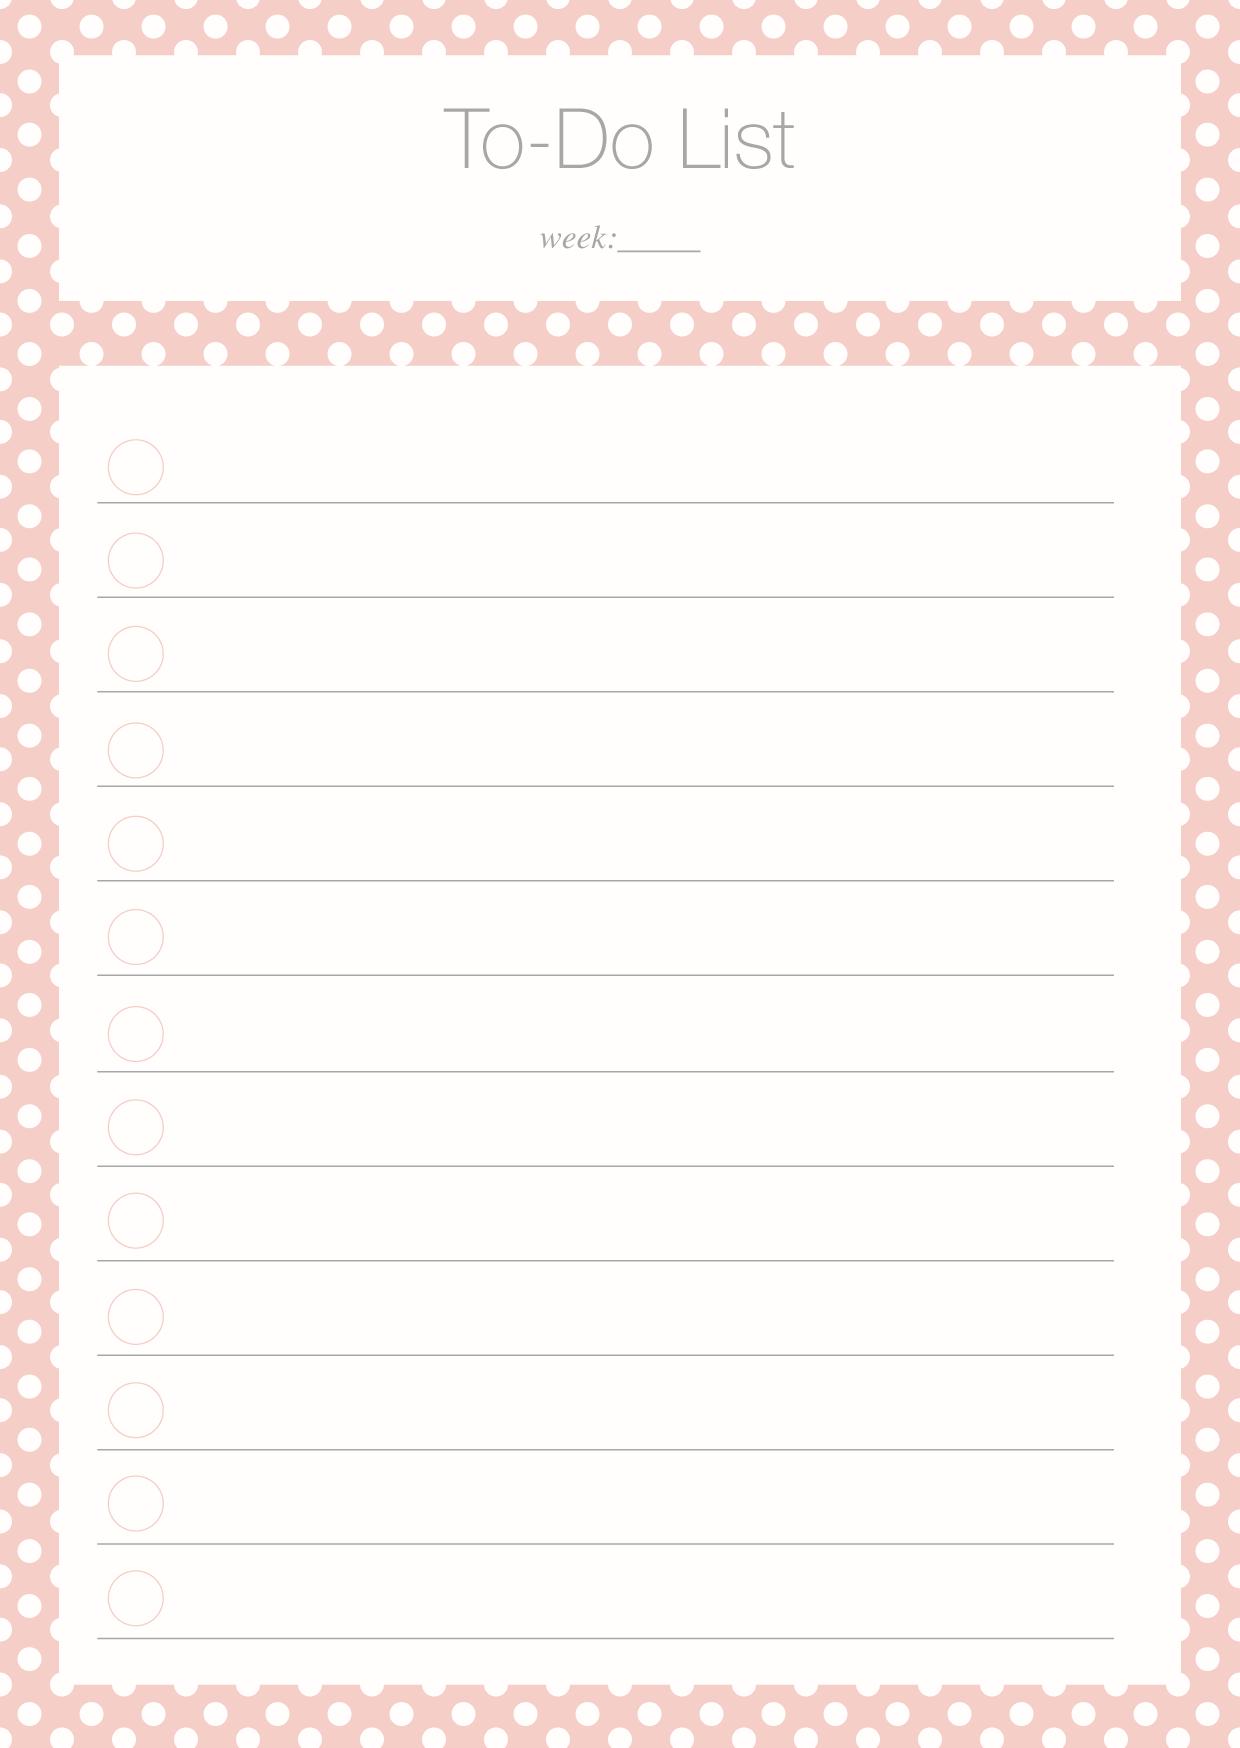 To Do List Freebie | Filofax, Planners and Bullet journals